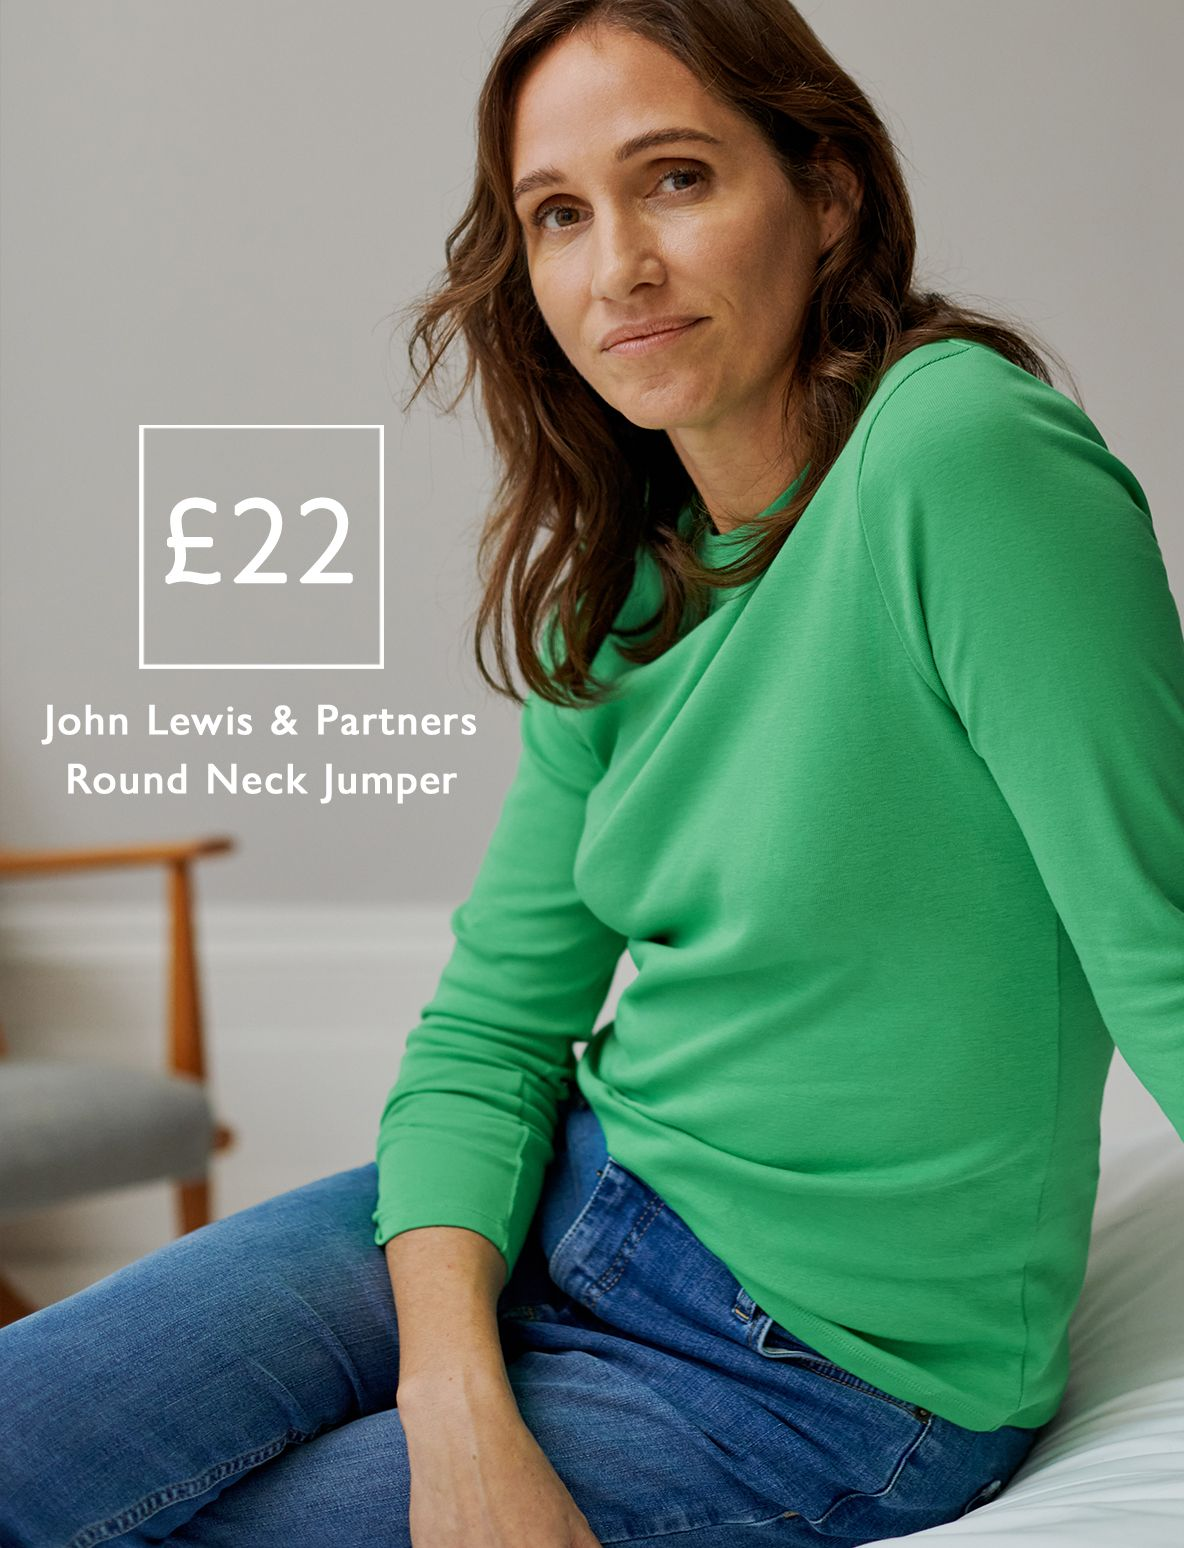 Shop John Lewis & Partners Women's Jumpers & Cardigans